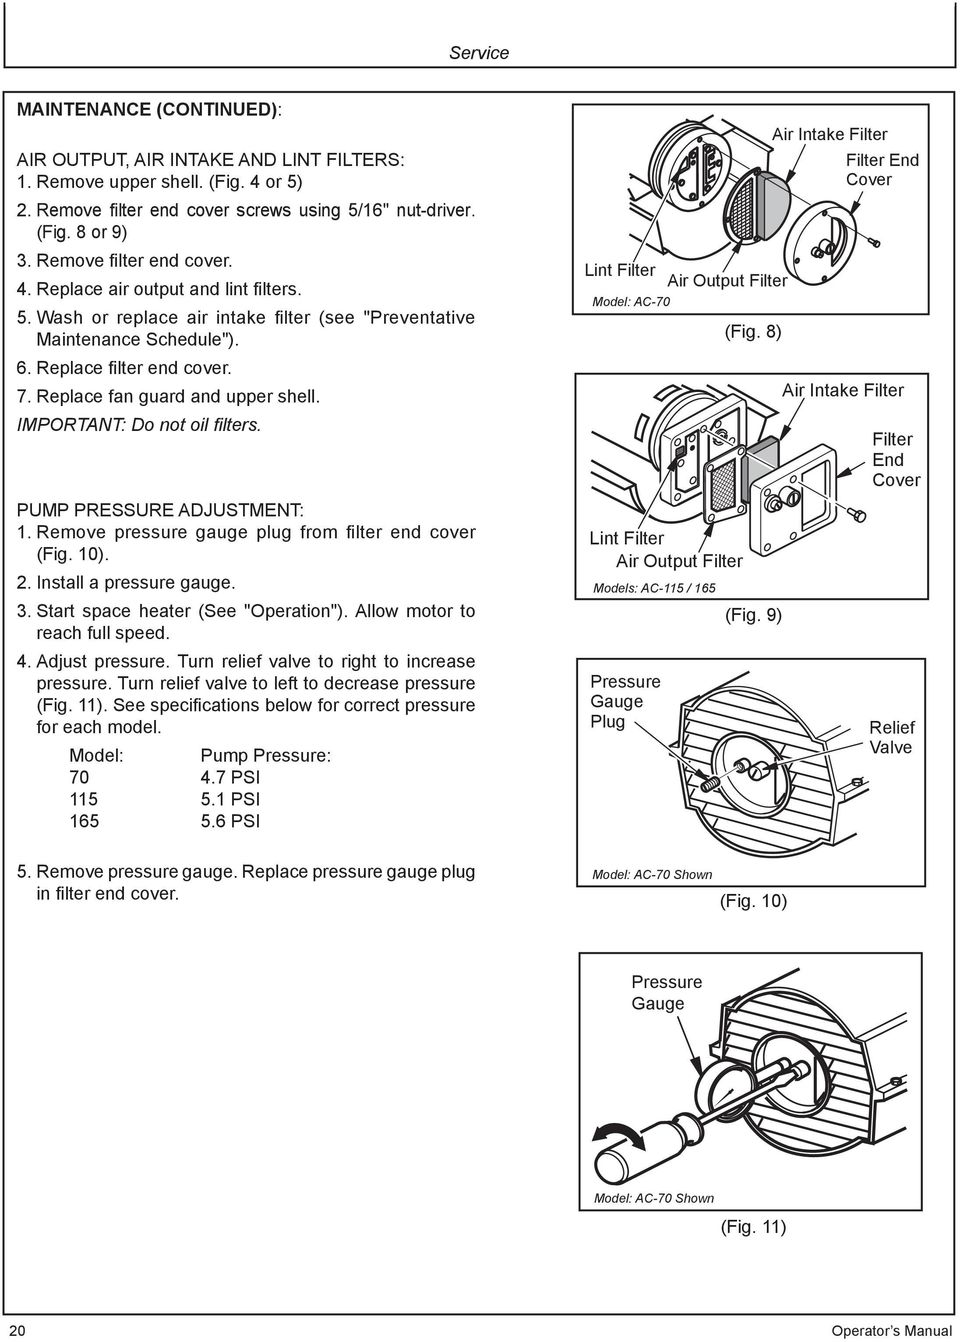 Replace fan guard and upper shell. IMPORTANT: Do not oil filters. PUMP PRESSURE ADJUSTMENT: 1. Remove pressure gauge plug from filter end cover (Fig. 10). 2. Install a pressure gauge. 3.